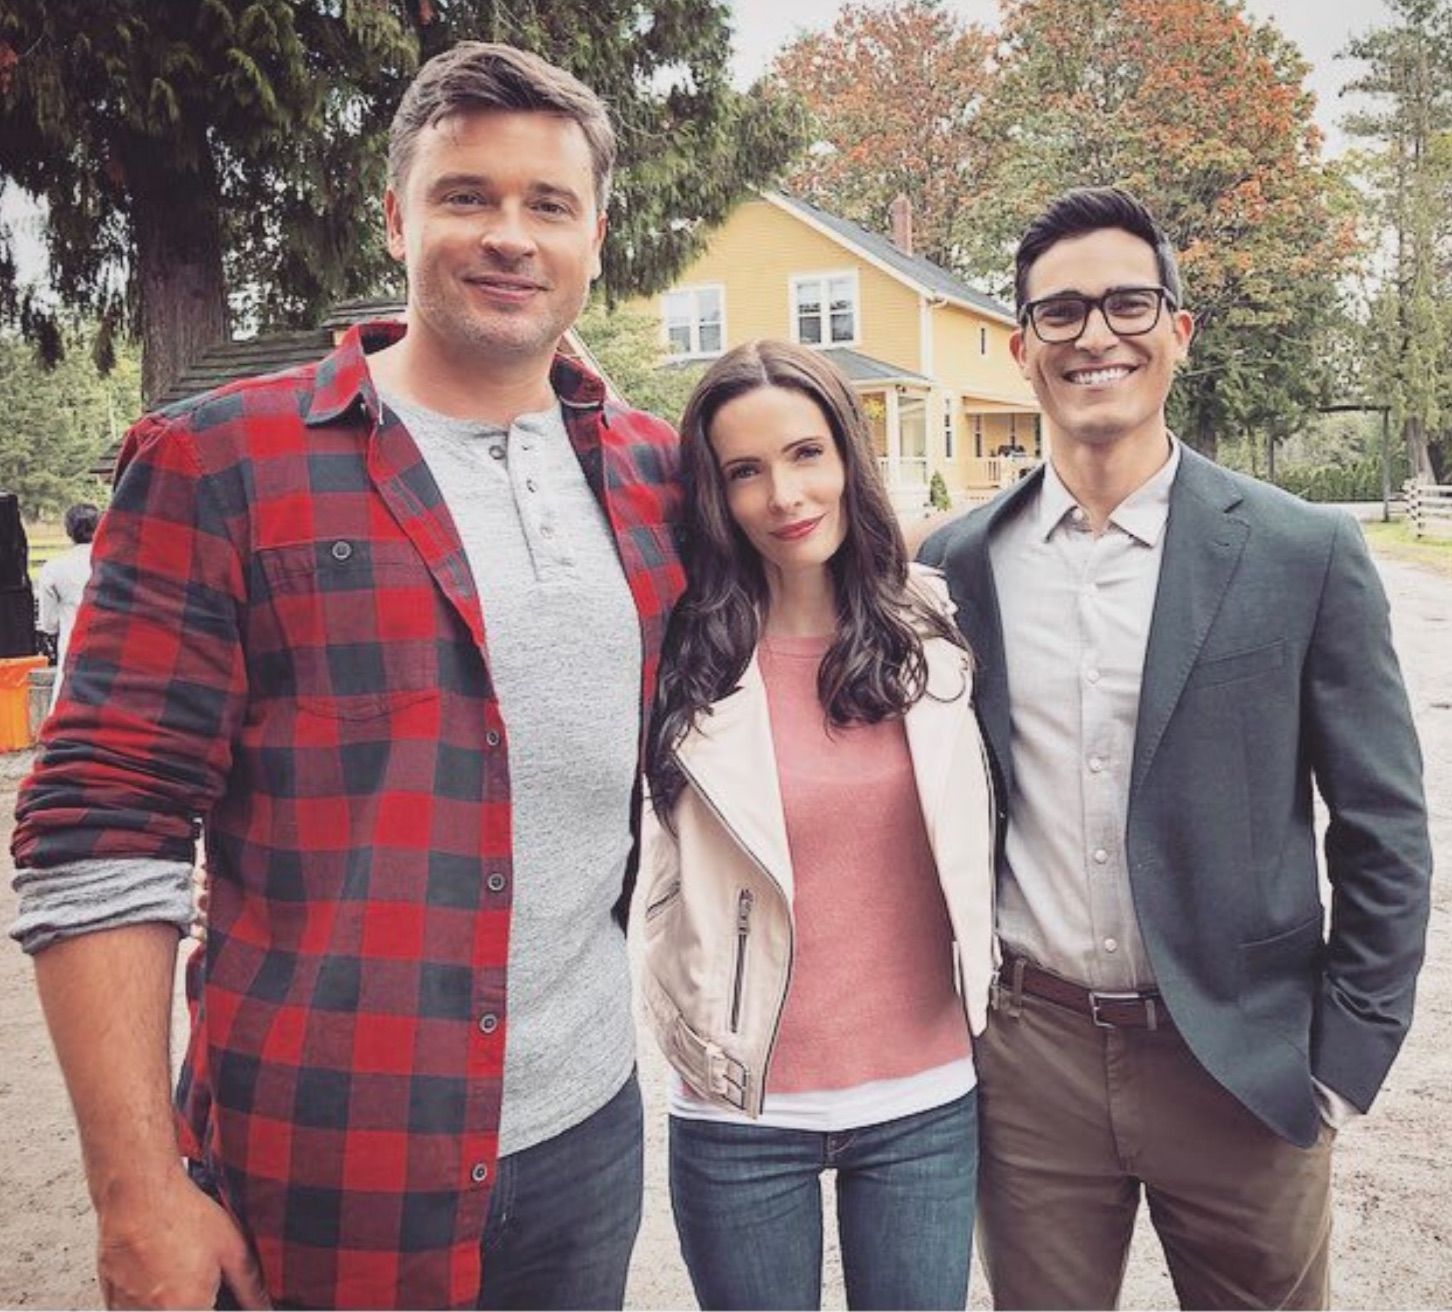 Smallville's Clark Kent meets Arrowverse's Superman and Lois Lane in crossover preview